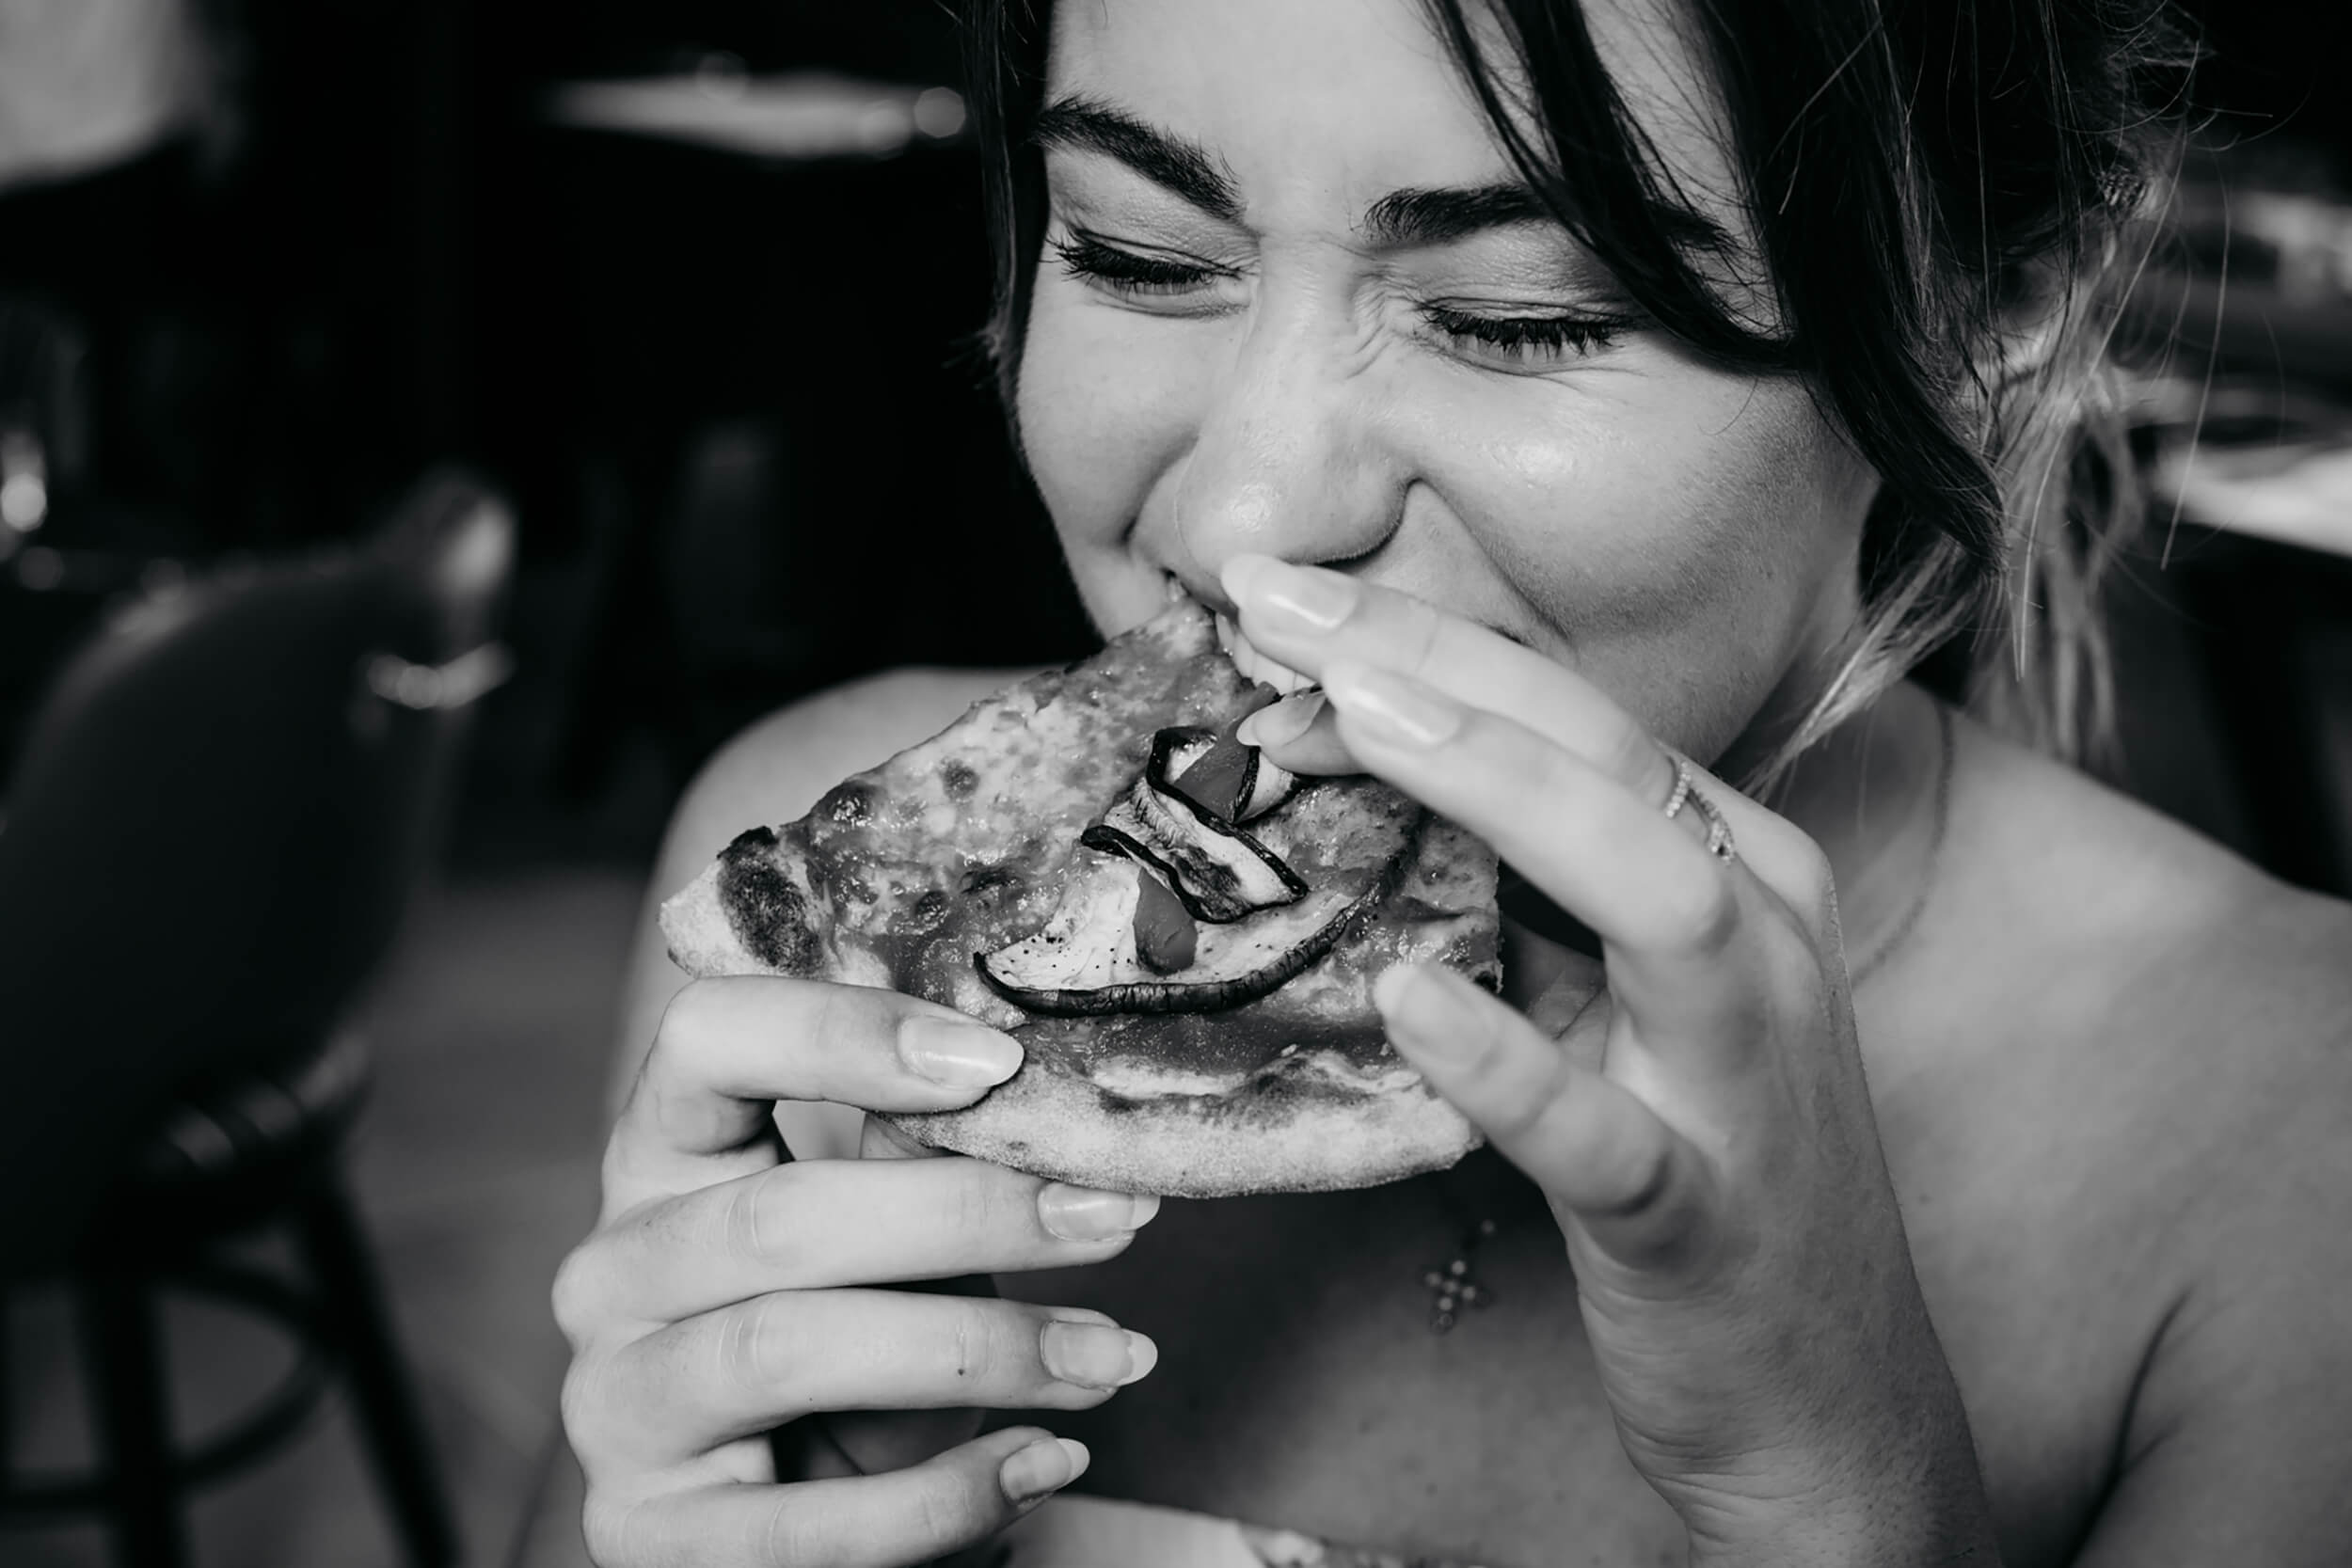 Woman taking a bite out of a pizza. The image is black and white.